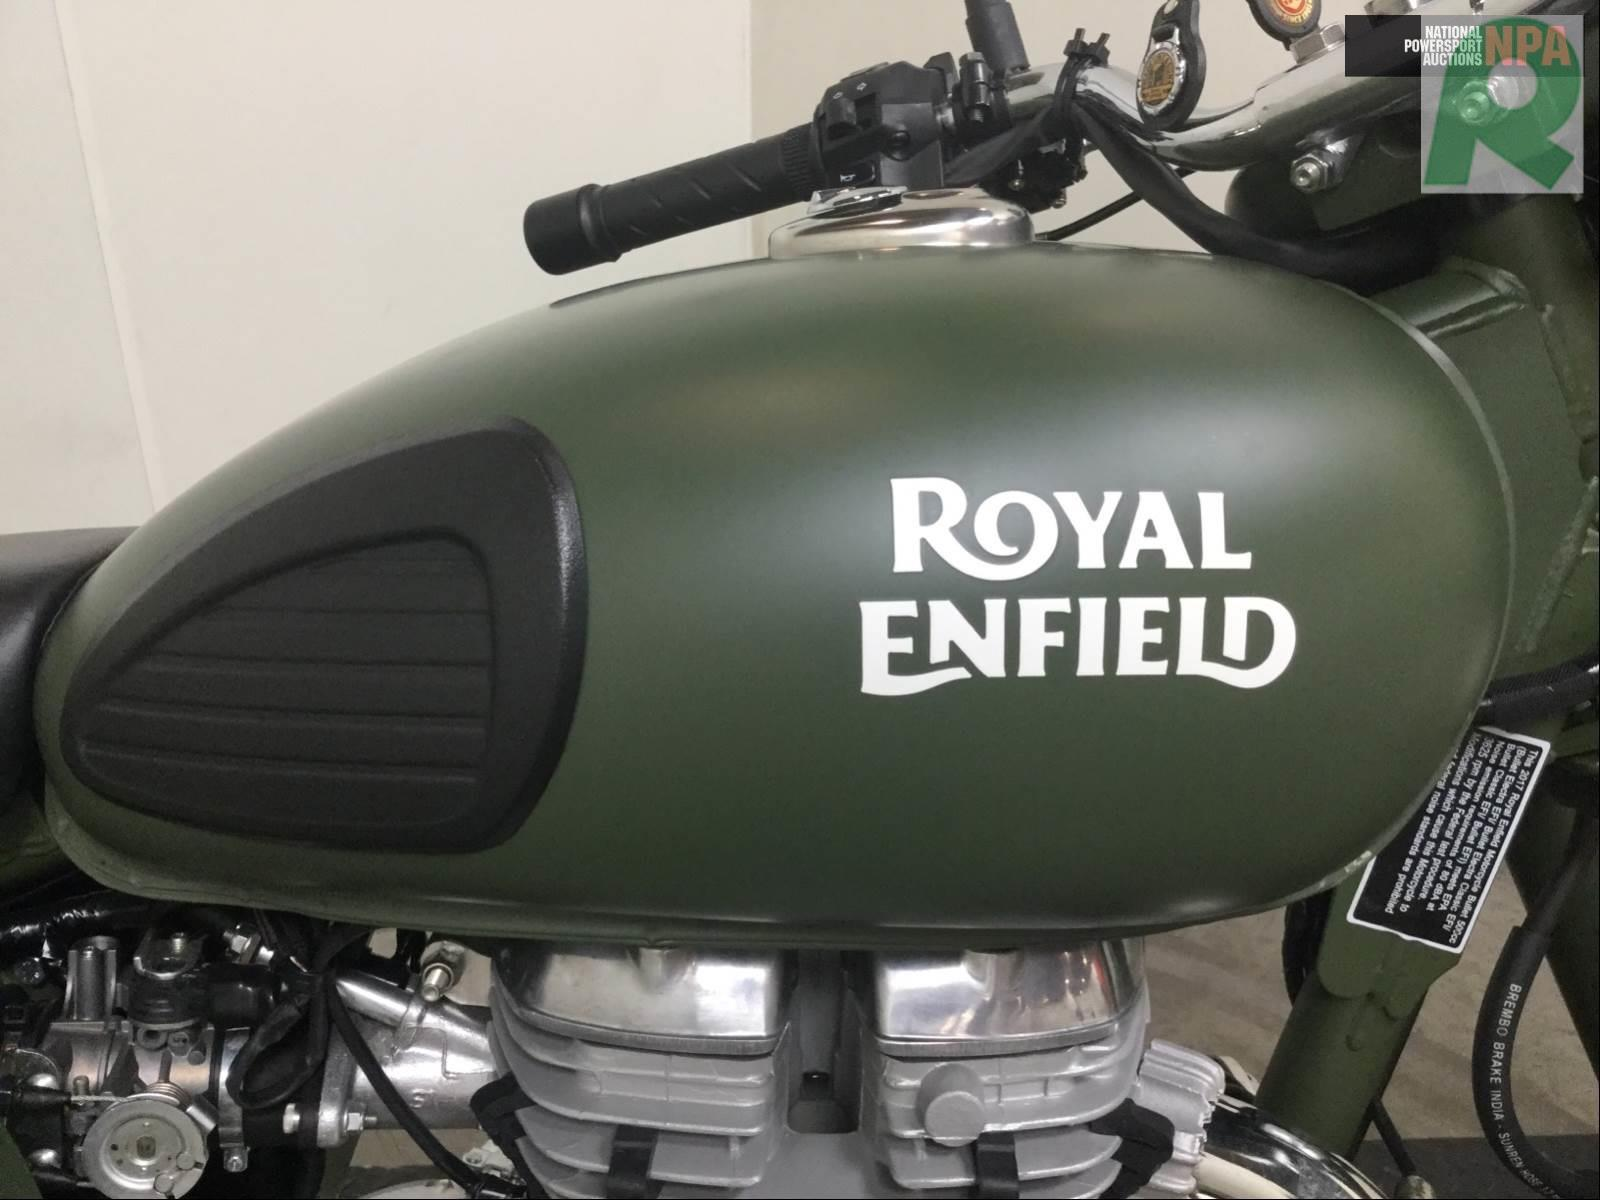 2017 ROYAL ENFIELD CLASSIC 500 ARMY